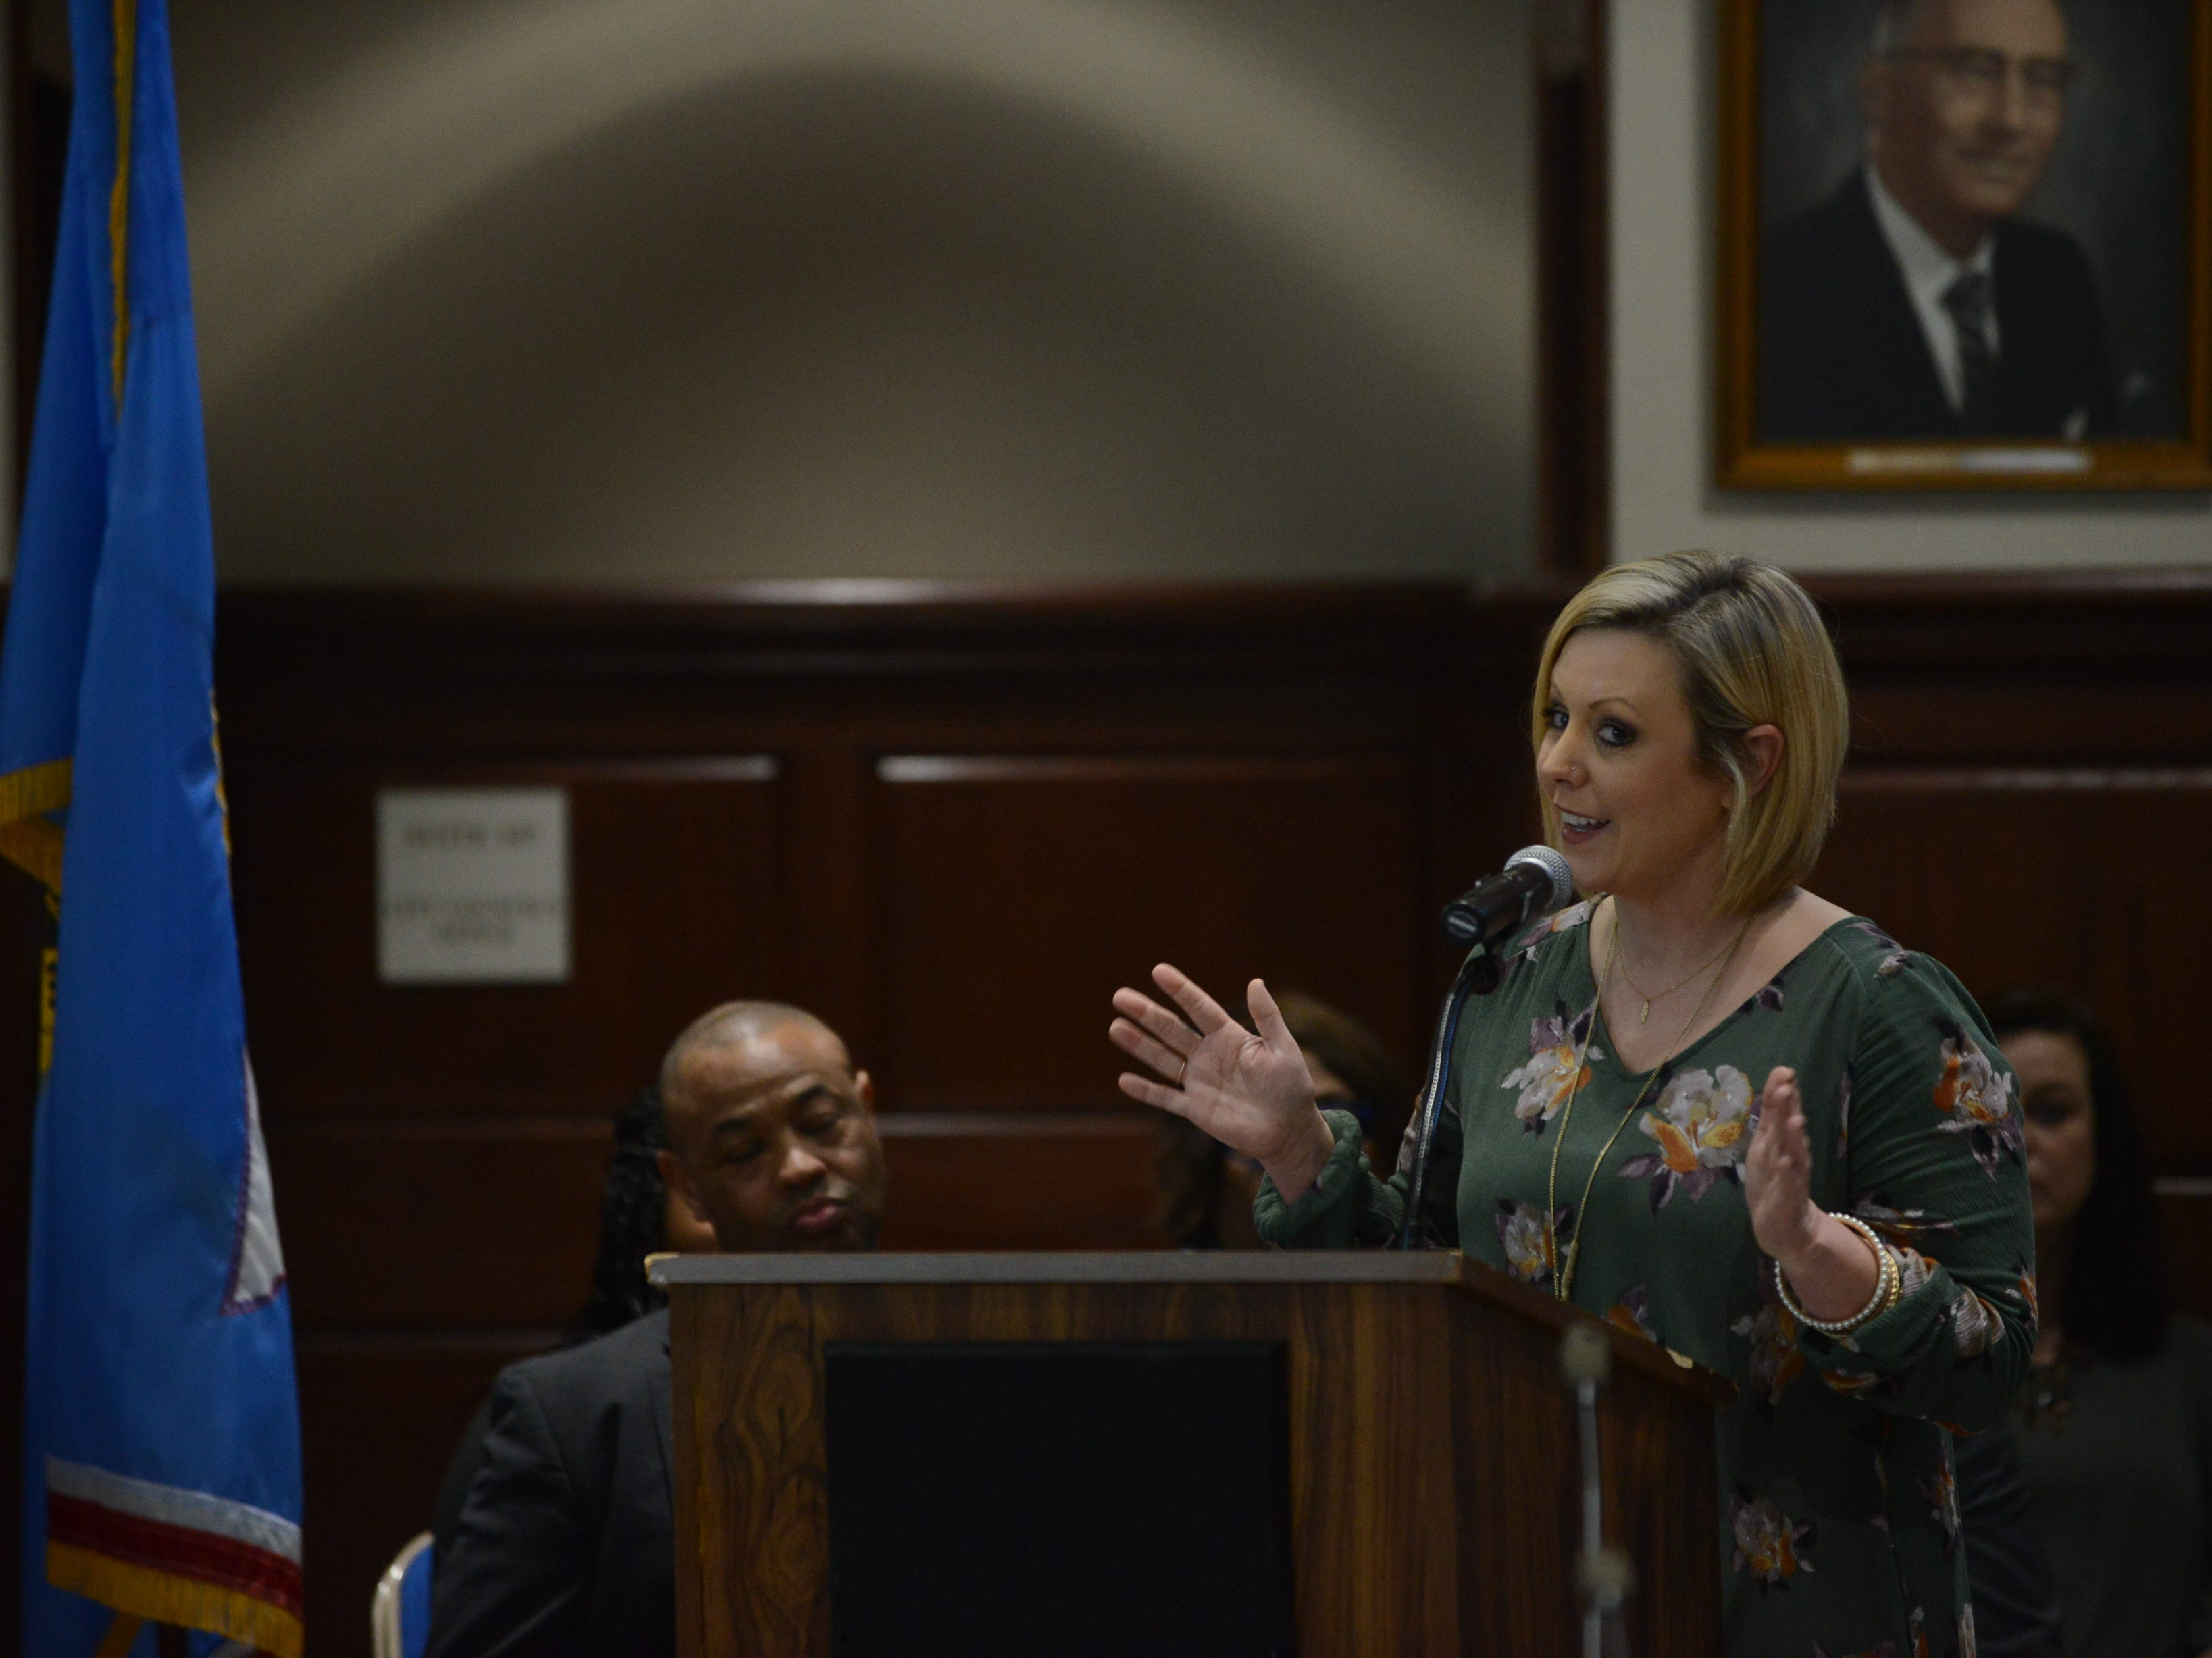 Beth Parnell, whose son goes to Pope Elementary School, explained how not everyone has to agree on every aspect of a plan for it to work, comparing the school board's plan to the learning plan created for her autistic son during public comment at the JMC school board meeting at Jackson City Hall on Thursday night.